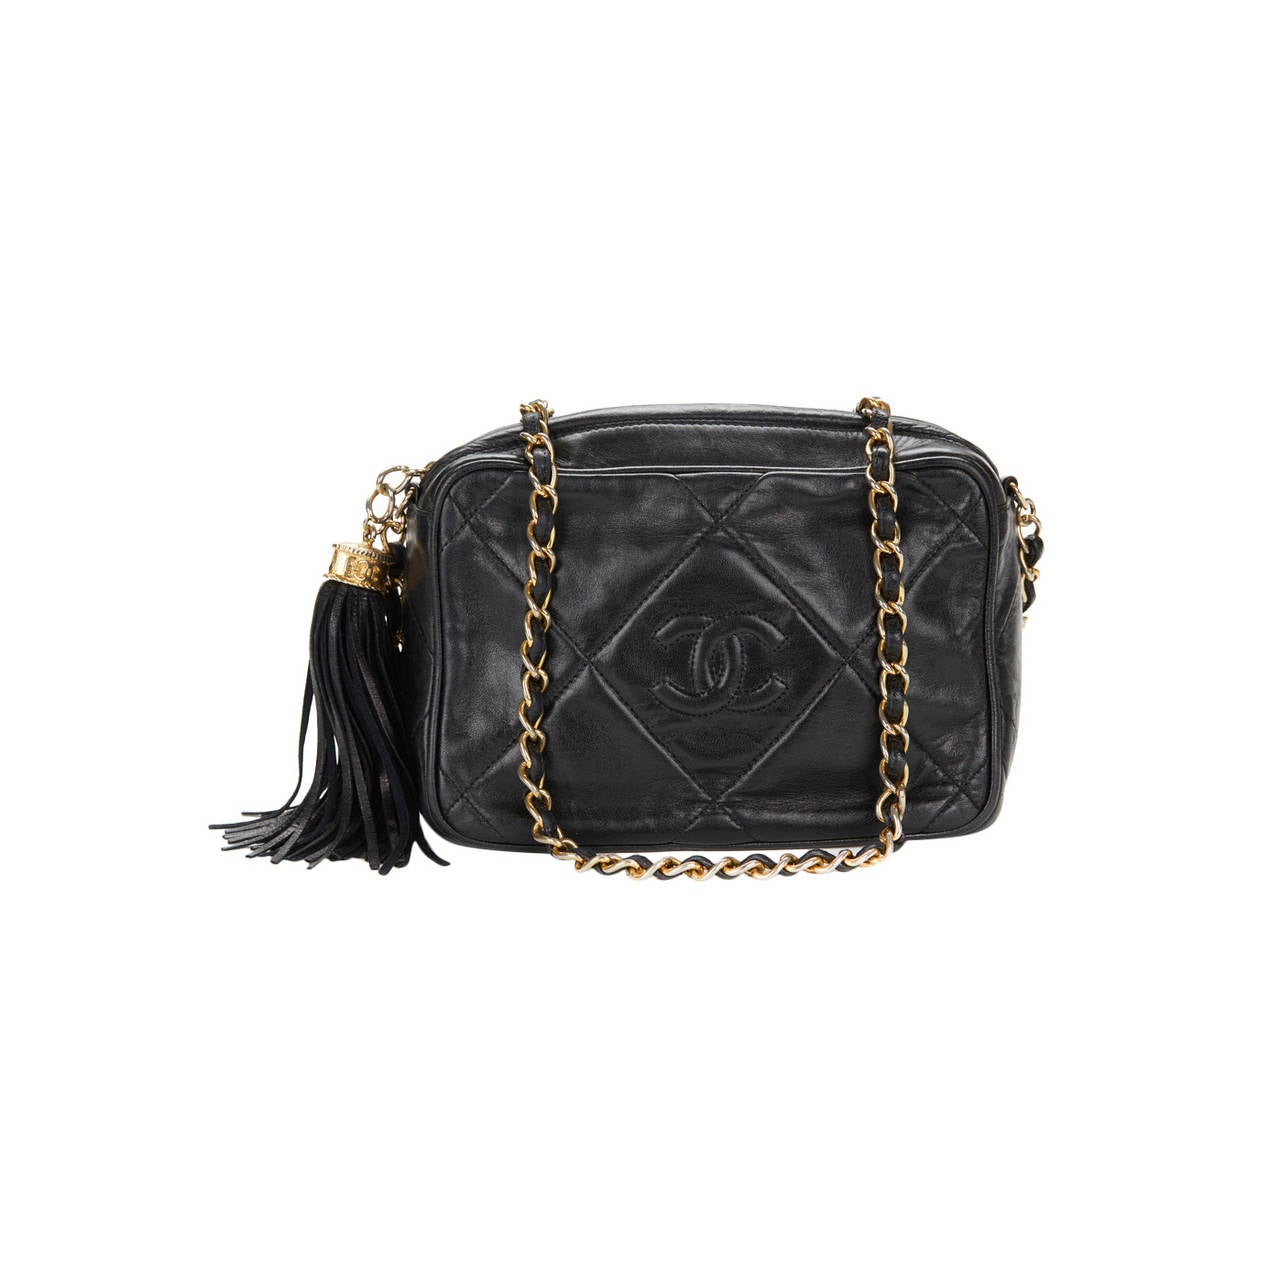 1990's Chanel Black Lambskin Vintage Camera Tassel Bag For Sale